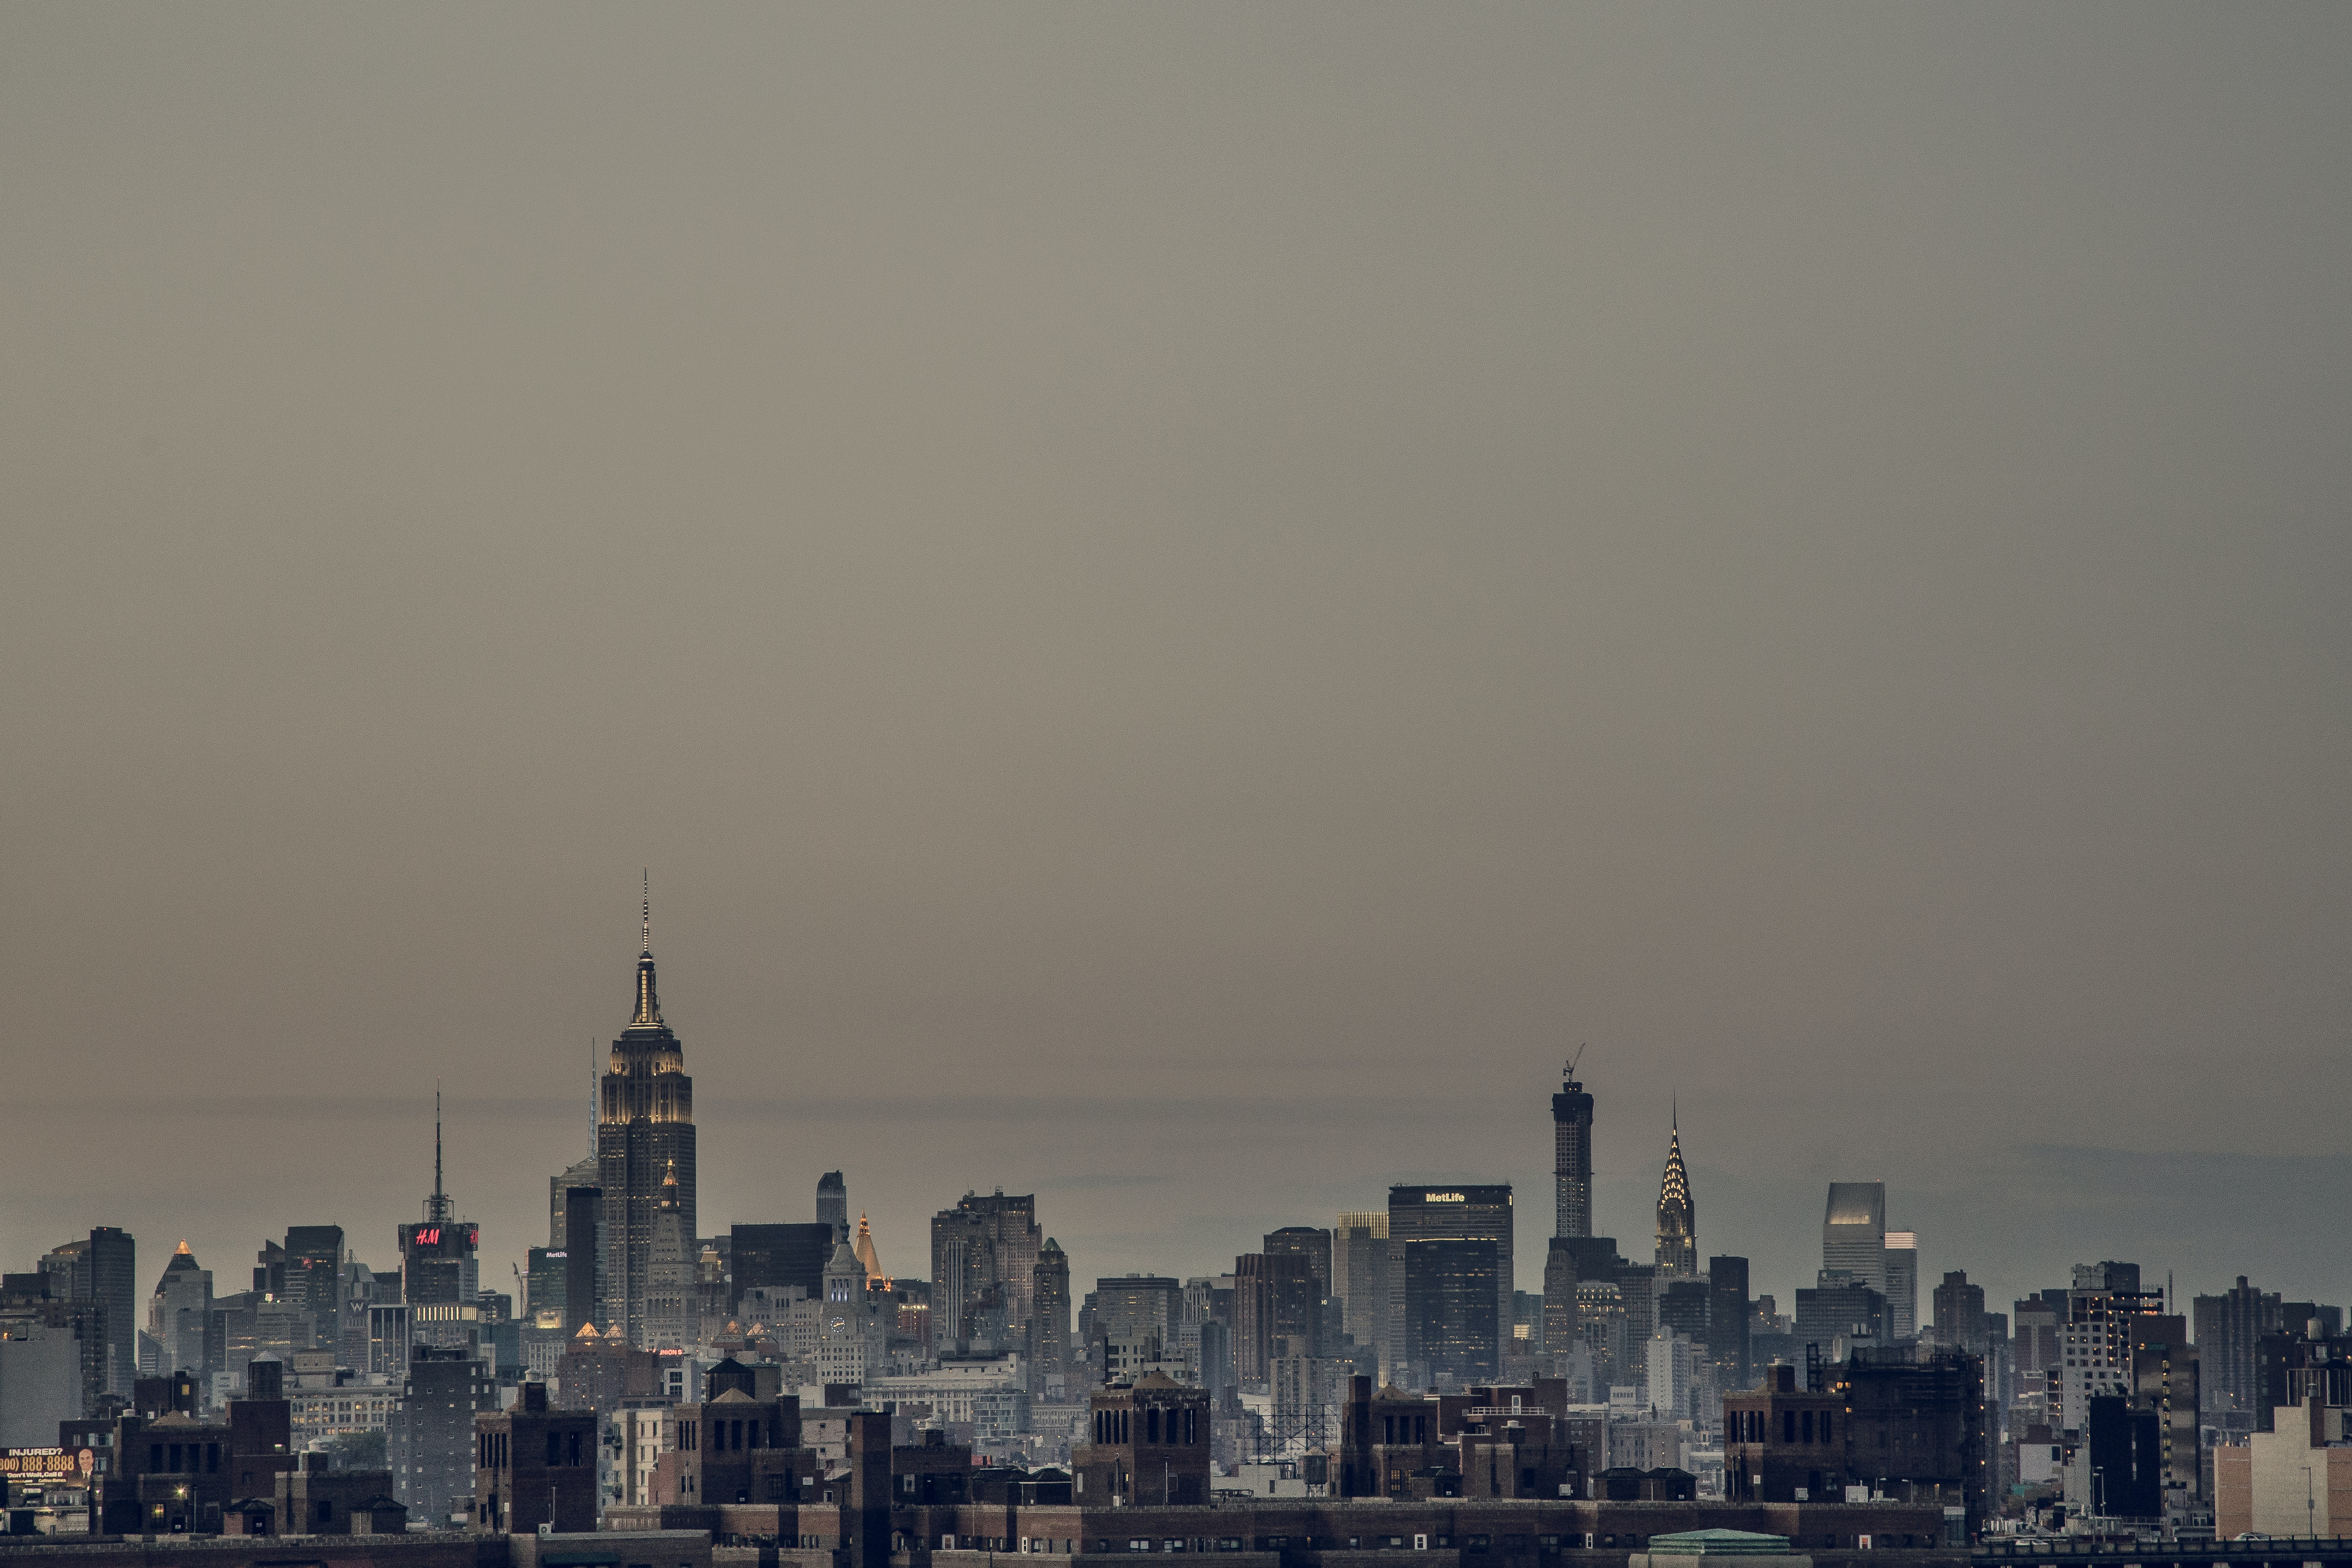 The New York City skyline at night with the sky filled with smog